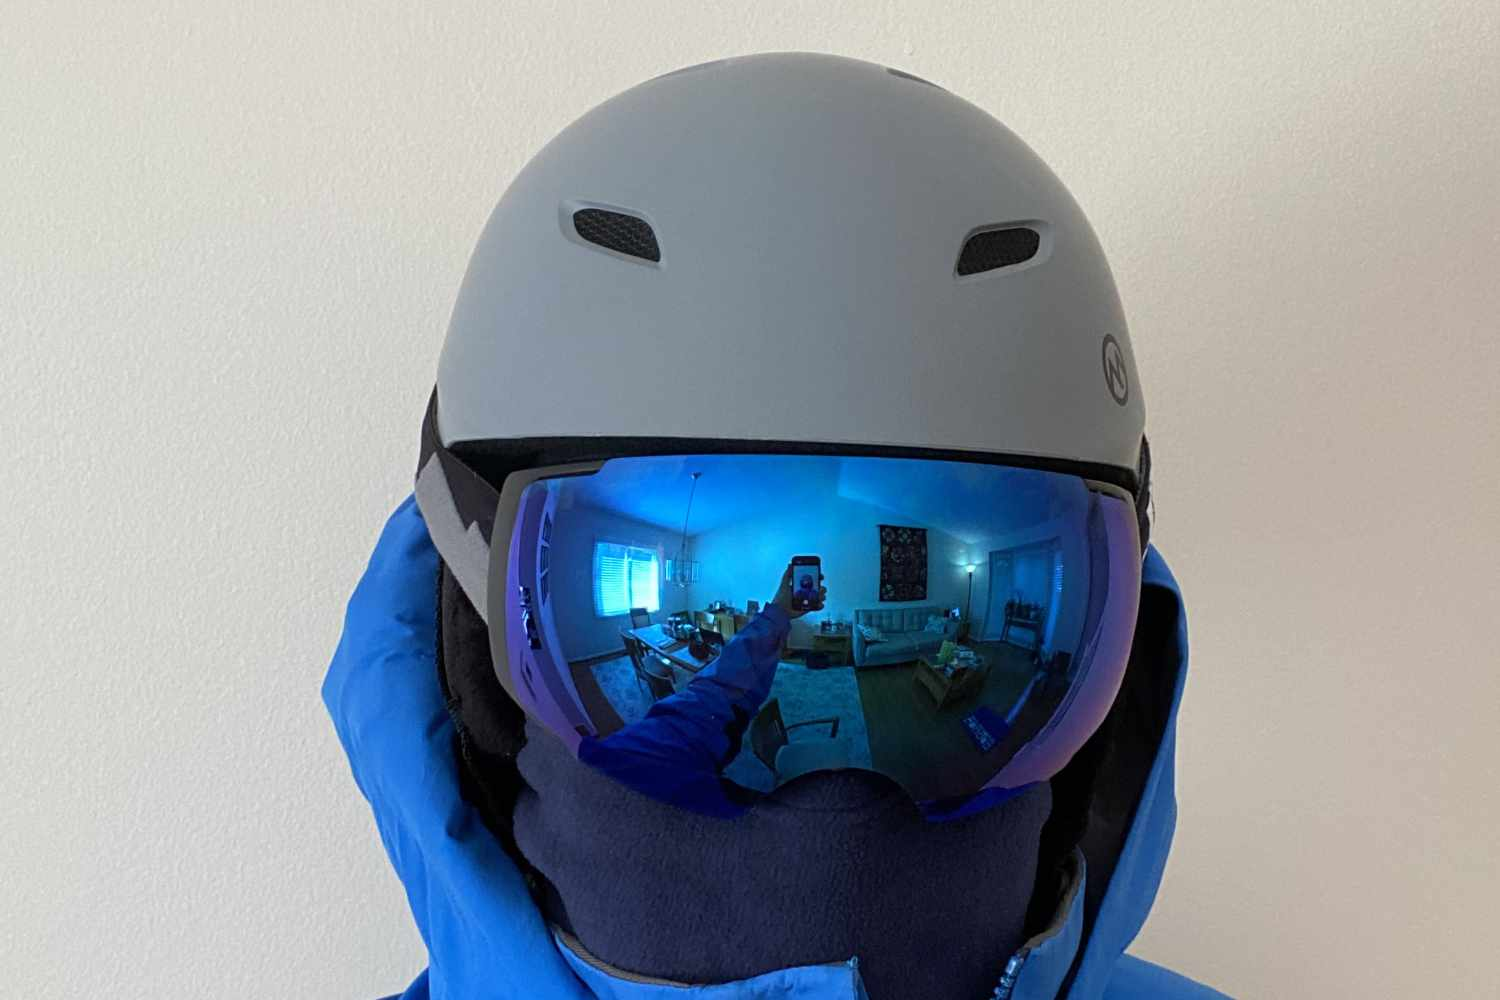 front view with goggles